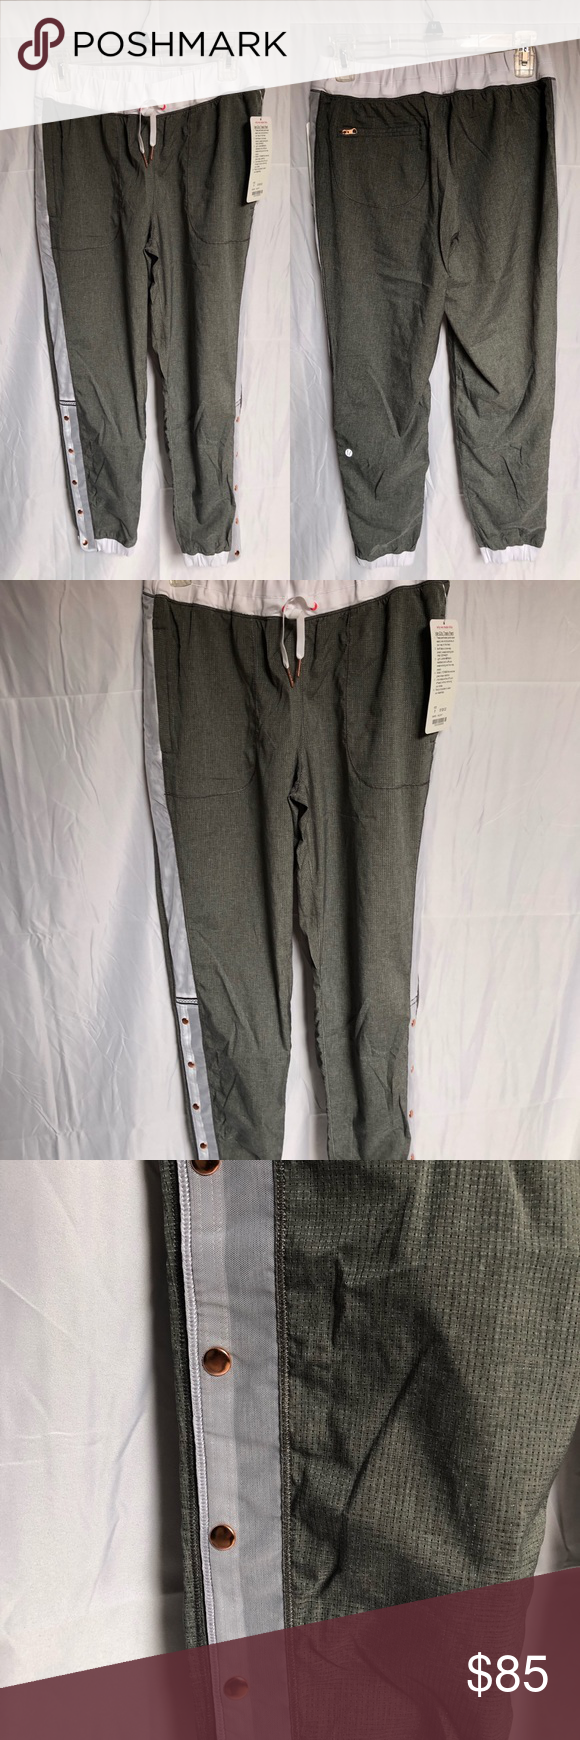 f51bf3faf NWT Lululemon Var-City Track Pant size 8 New with tags! Light weight and  really comfy! lululemon athletica Pants Track Pants   Joggers